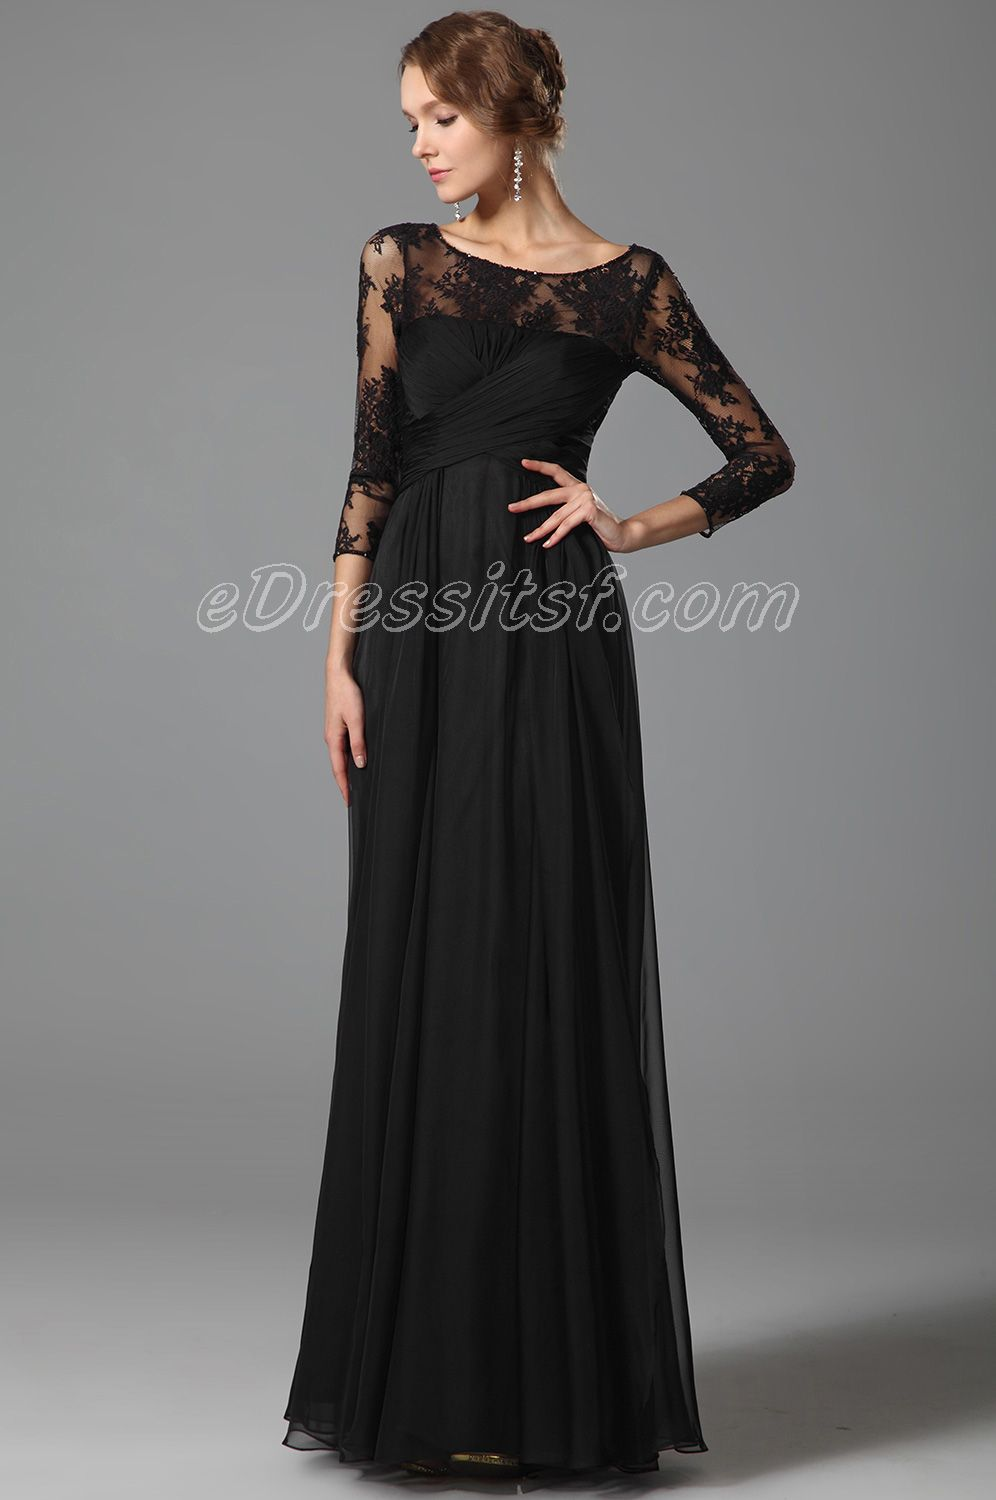 Lace Sleeves Empire Waist Black Evening Dress | My Style Pinboard ...